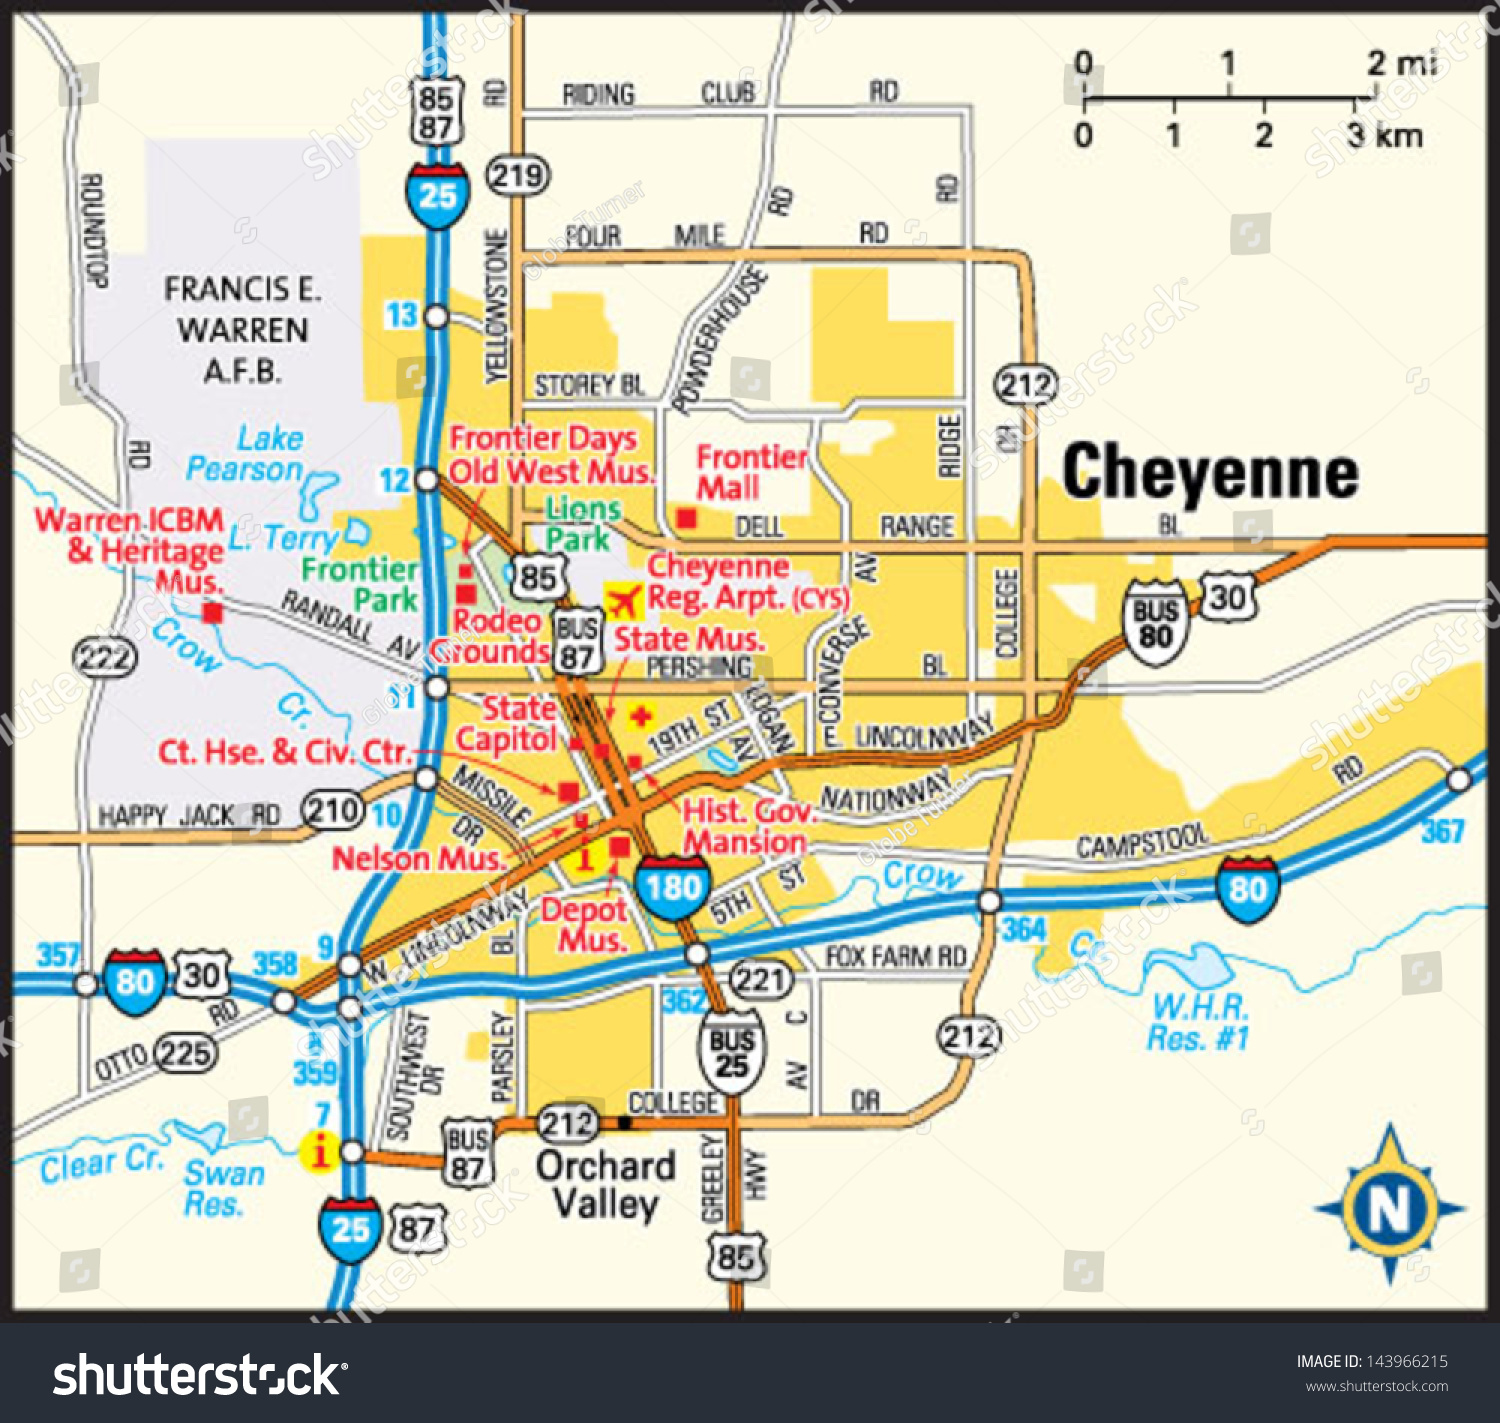 Cheyenne Wyoming Area Map Stock Vector (Royalty Free) 143966215 on